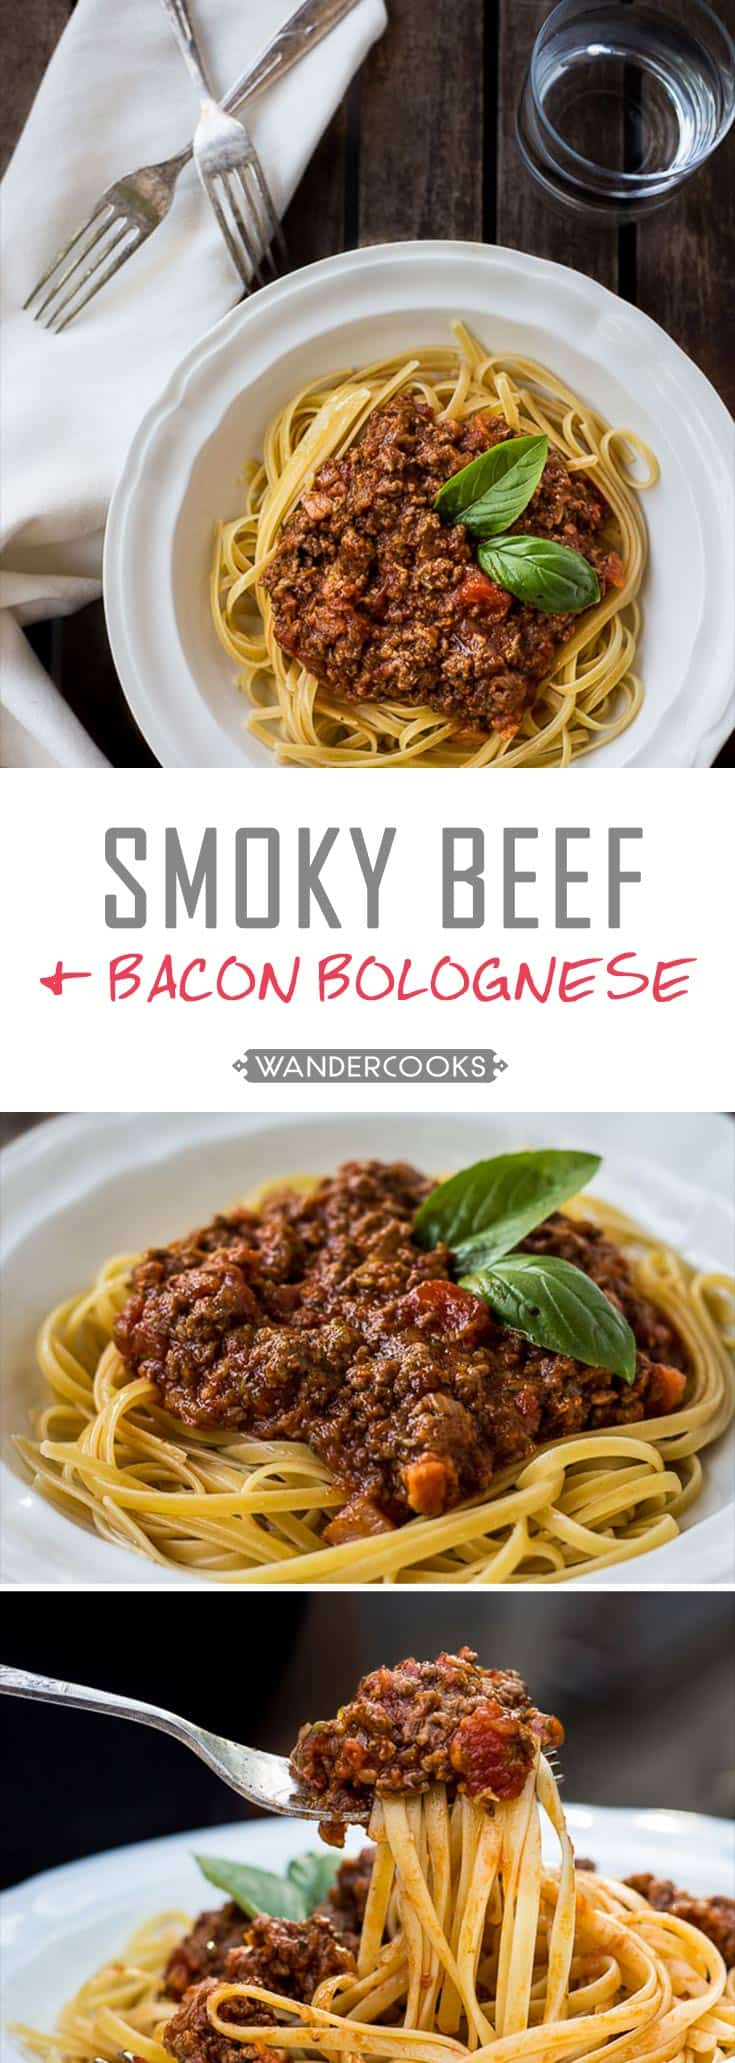 Smoky Beef and Bacon Bolognese